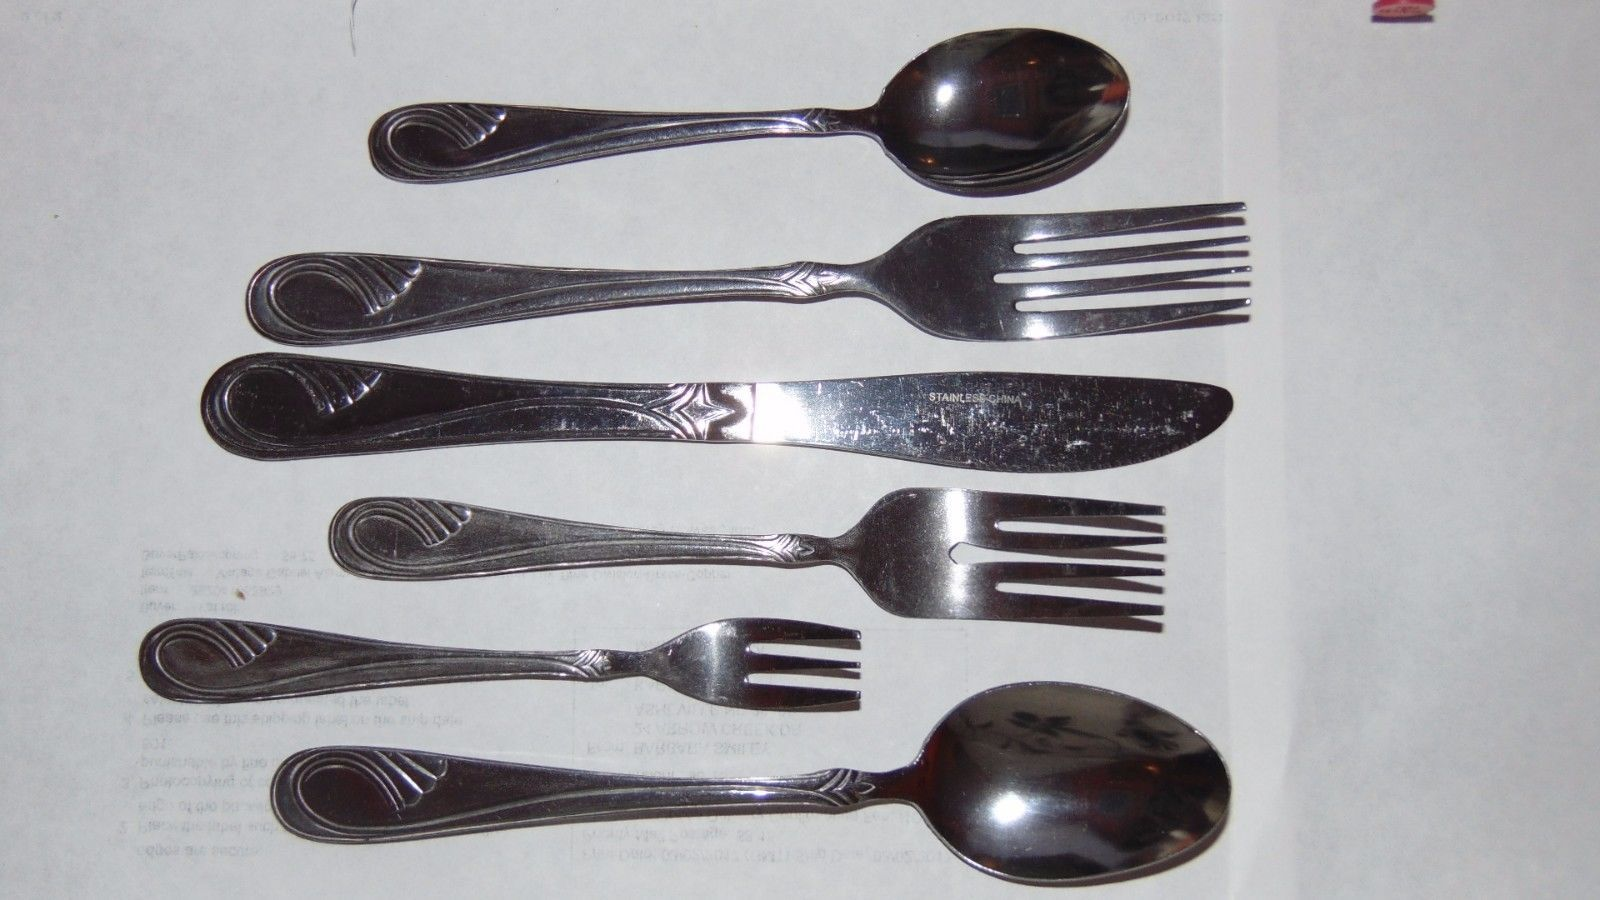 Vintage New Stainless Flatware 65 Pieces Set 6 Piece Hostess Set Included-Crafts